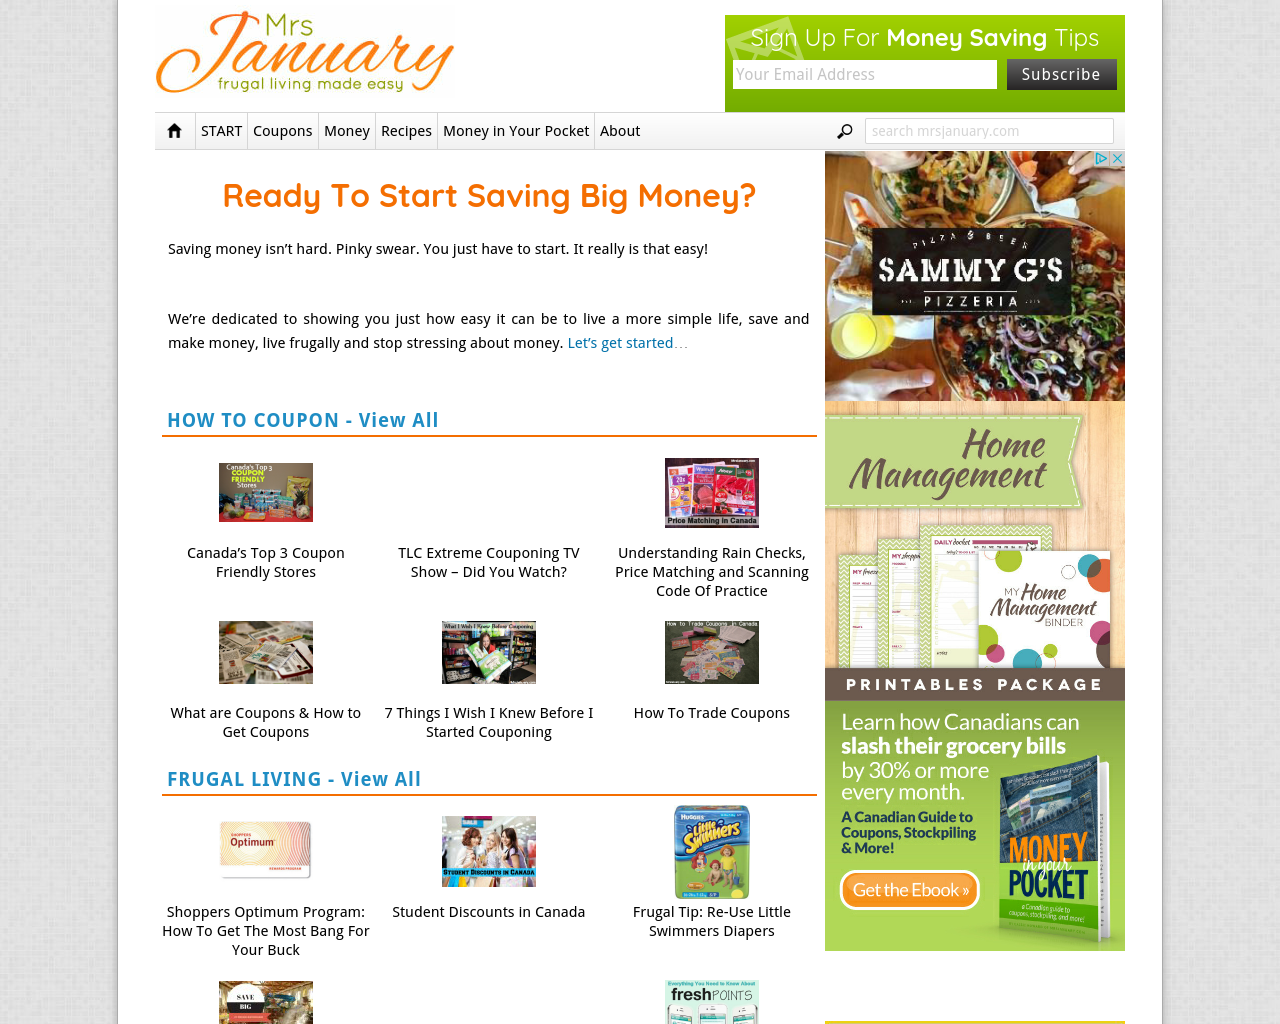 Mrs-January-Advertising-Reviews-Pricing